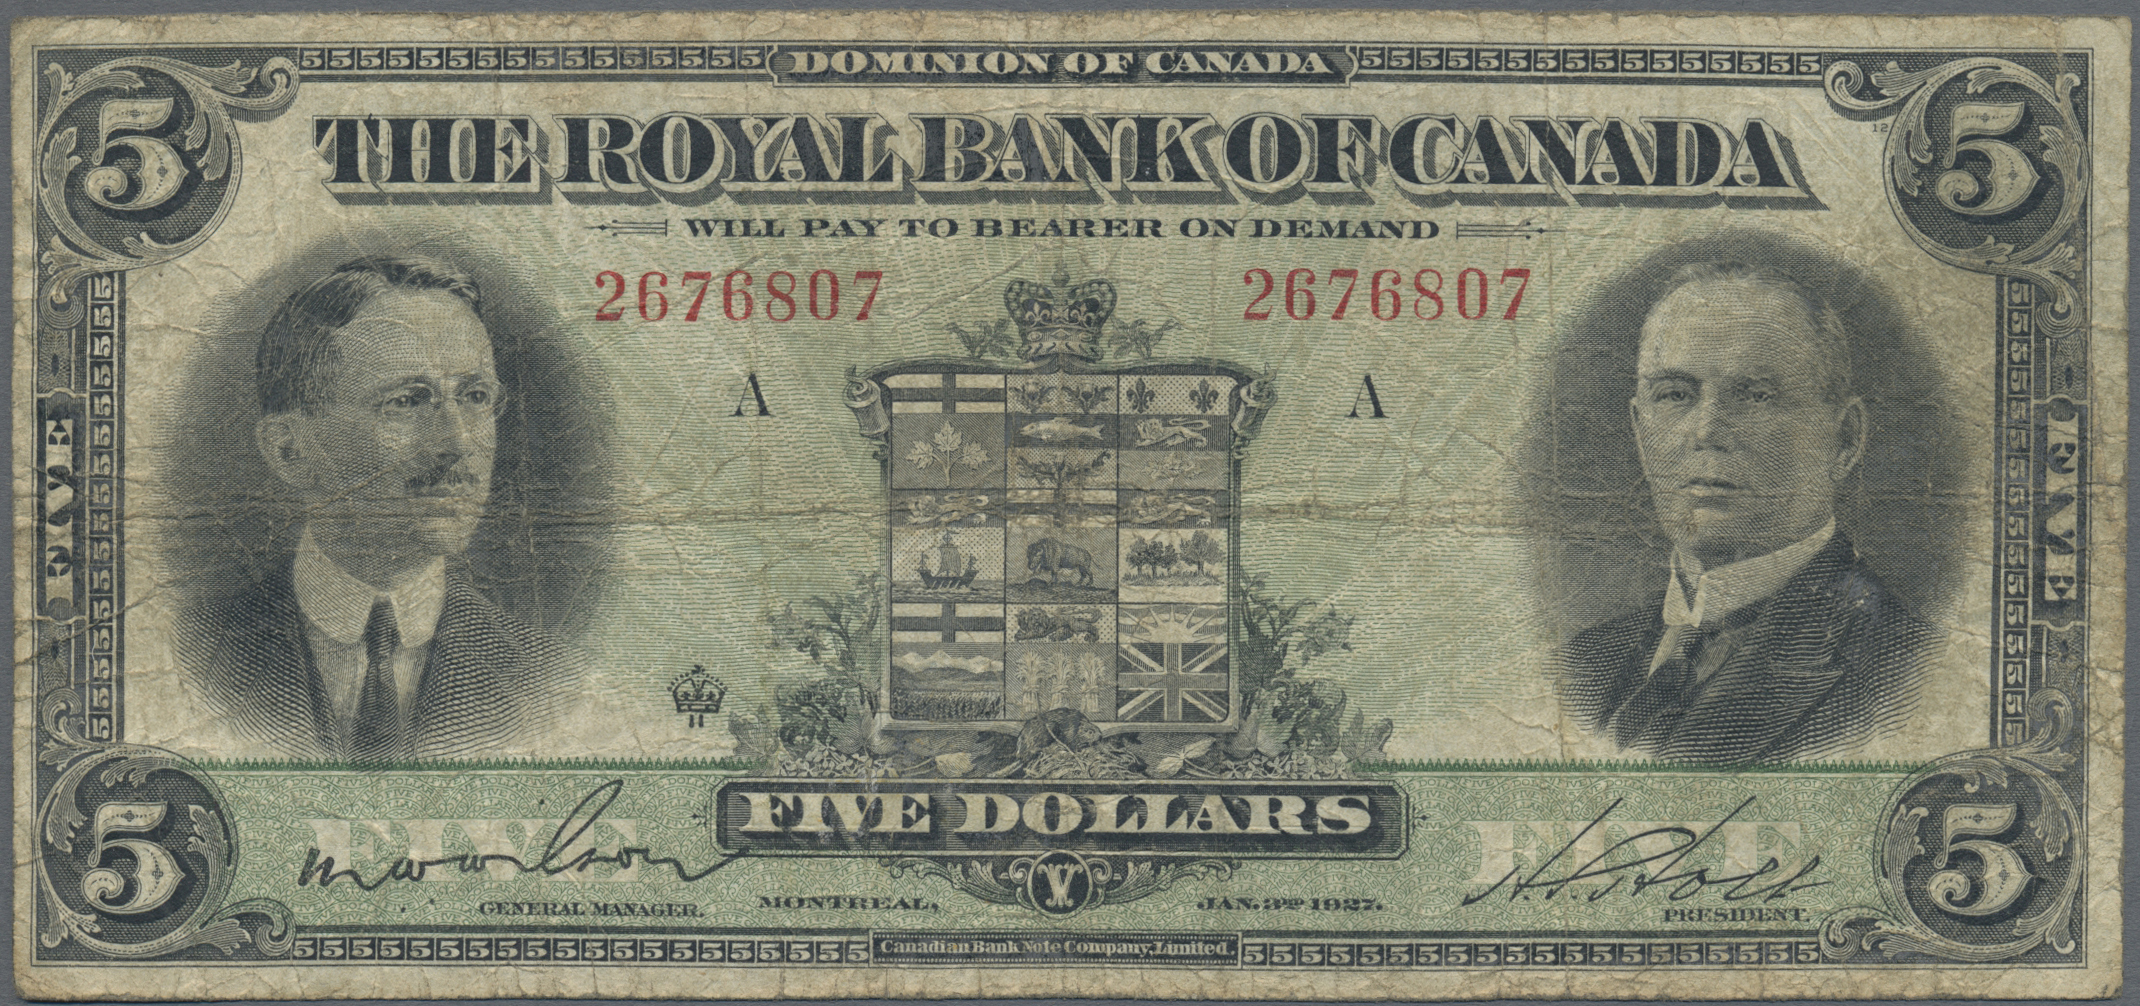 Lot 00105 - Canada | Banknoten  -  Auktionshaus Christoph Gärtner GmbH & Co. KG Sale #48 The Banknotes